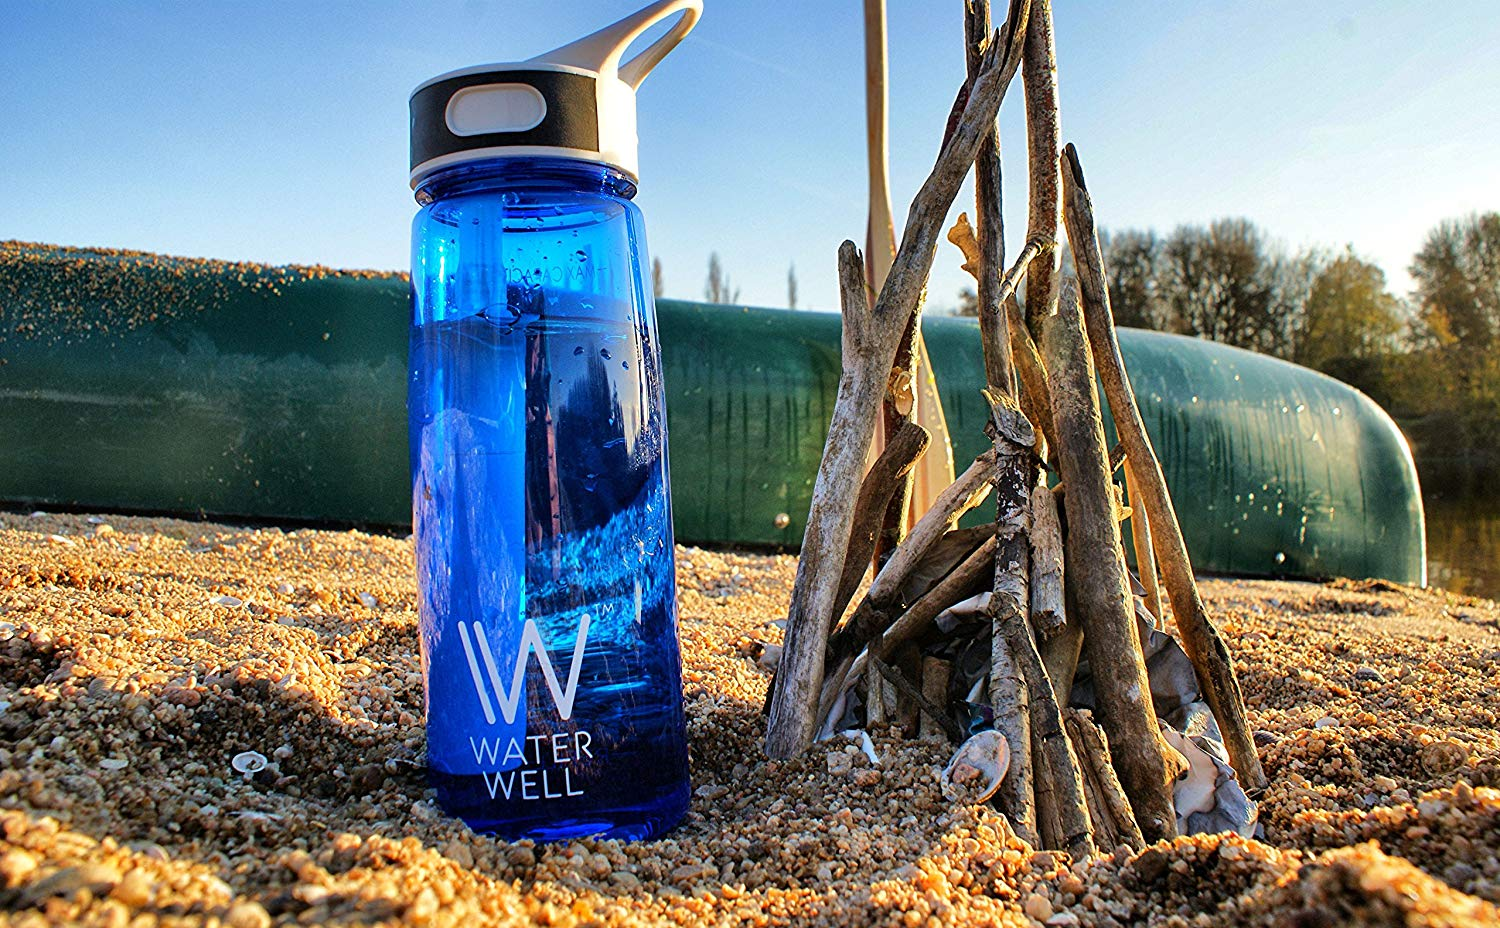 Family Travel Essentials for Long Haul Holidays with Tweens - WaterWell Travel Filter Bottle